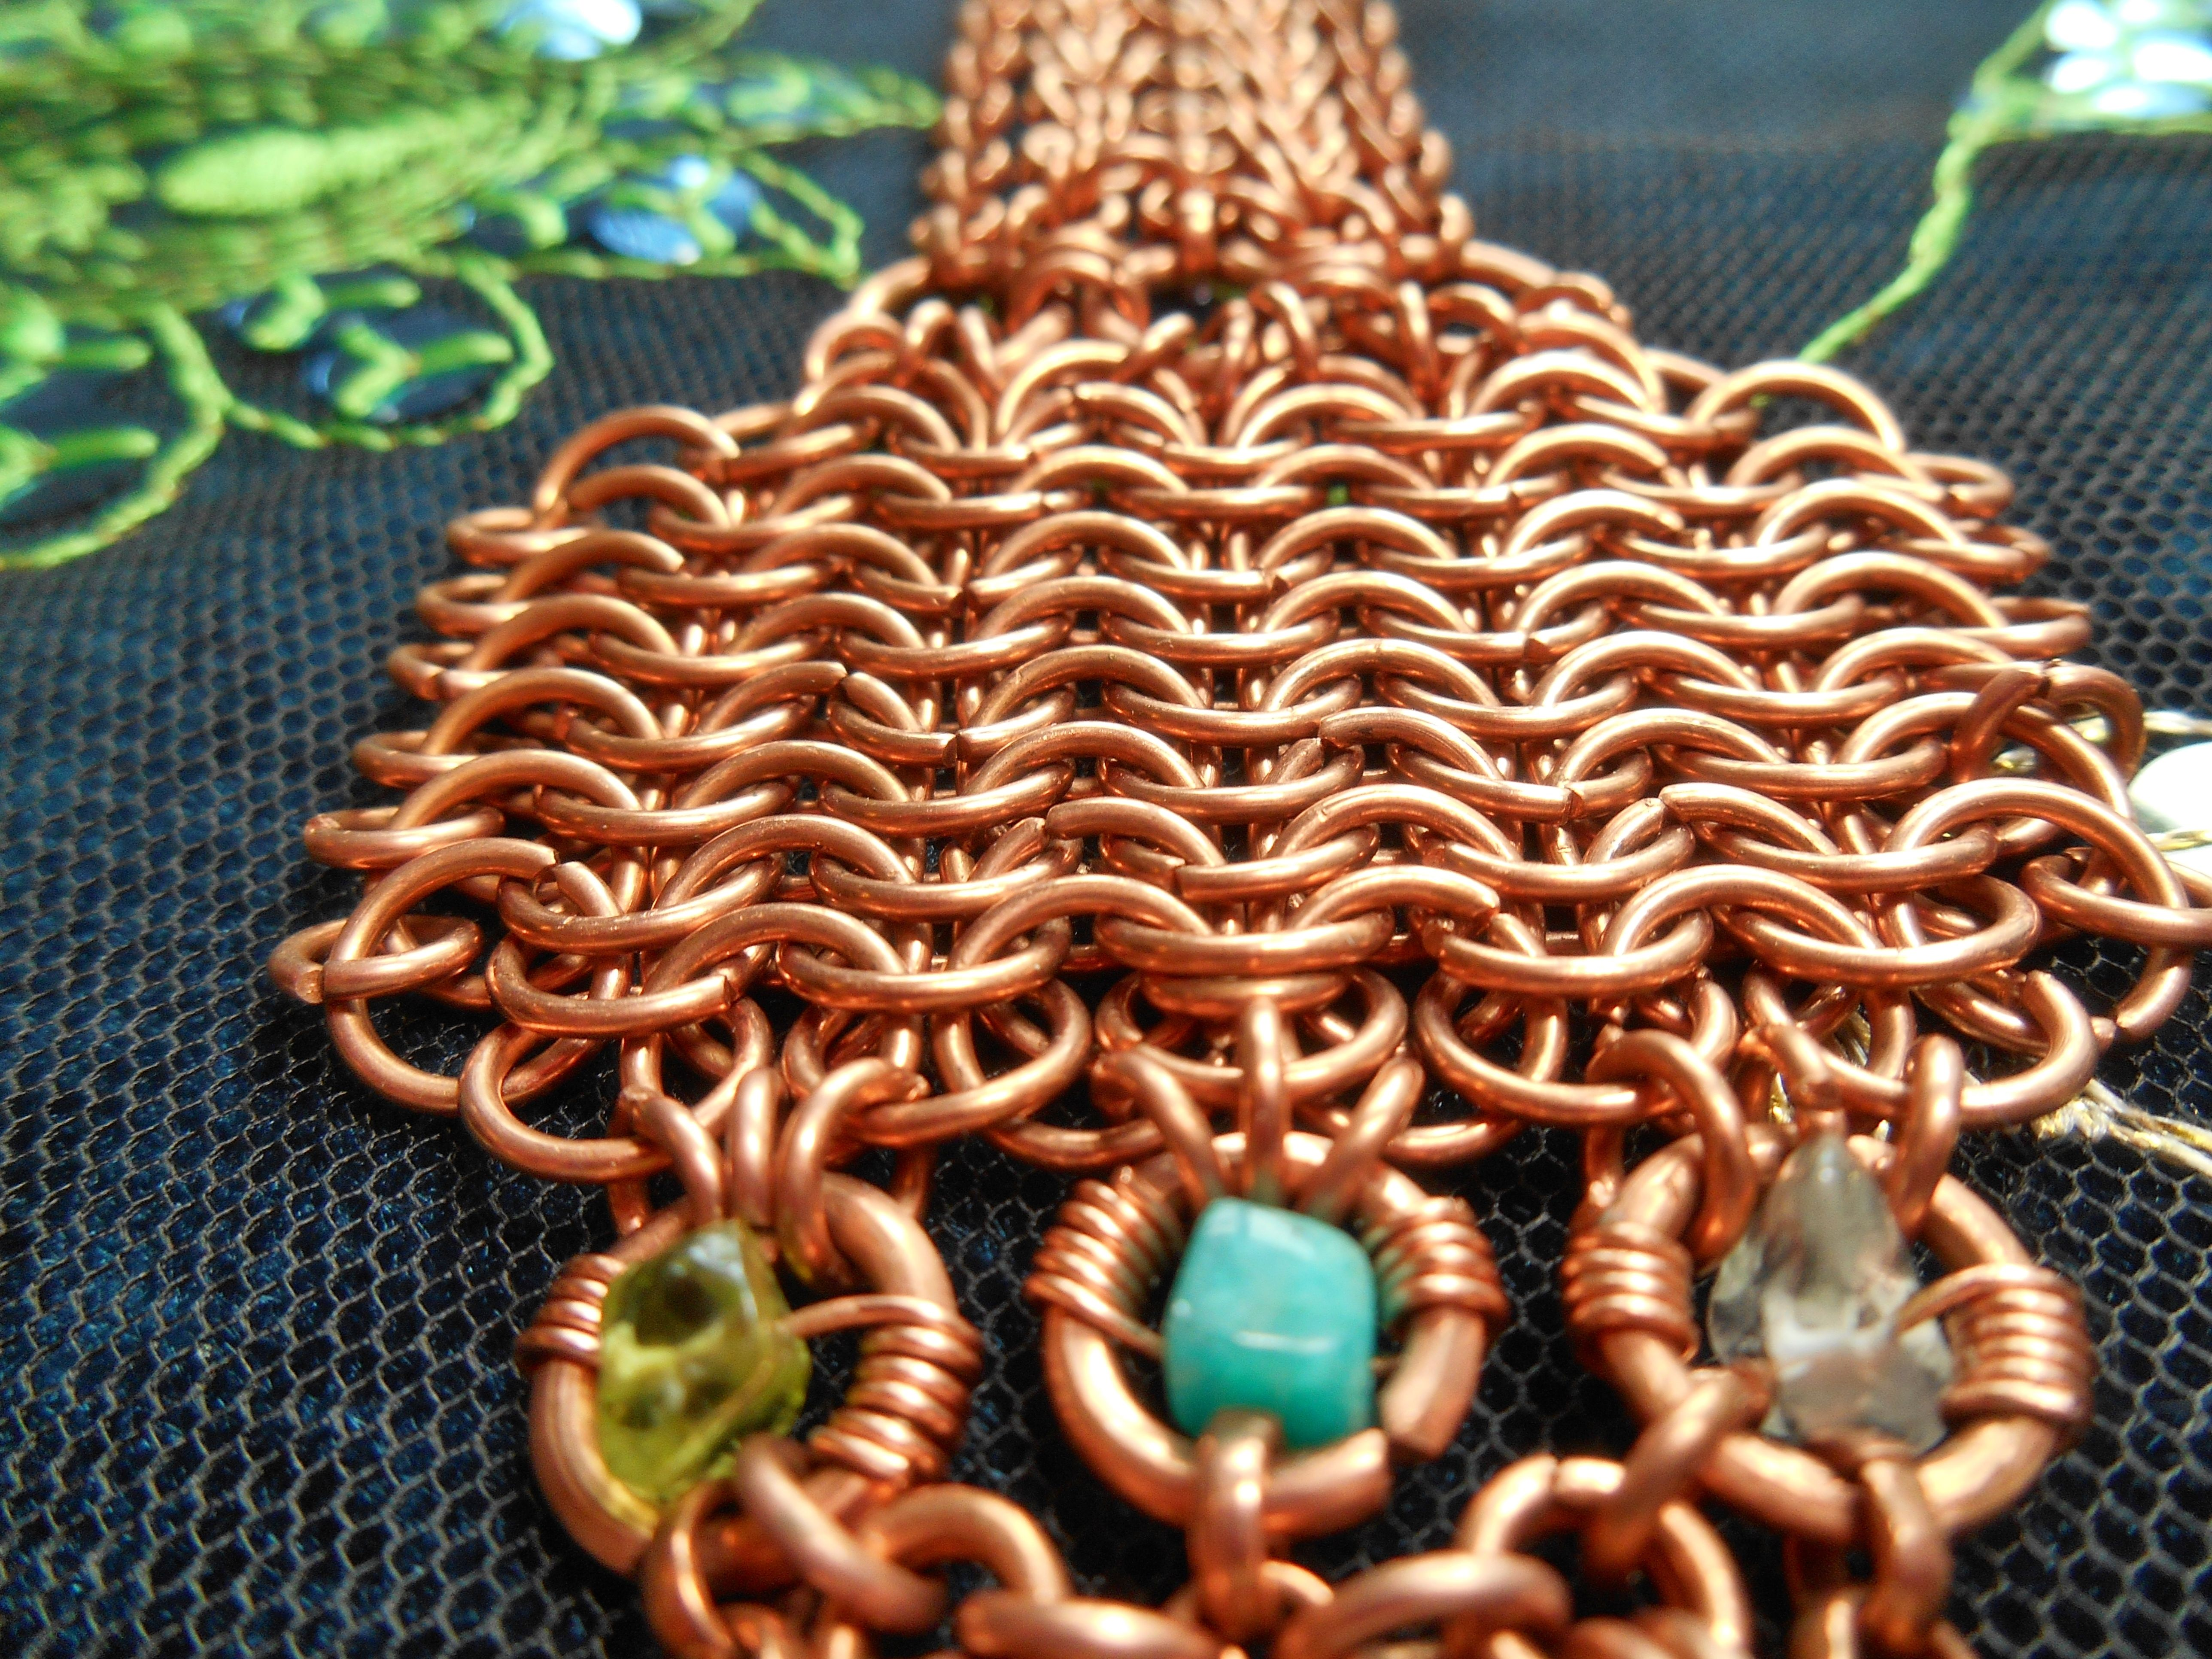 copper chainmaille cuff w/peridot, amazonite and clear quartz crystal gemstones https://www.etsy.com/ca/listing/214103008/unique-handmade-copper-chainmaille-cuff?ref=shop_home_active_13